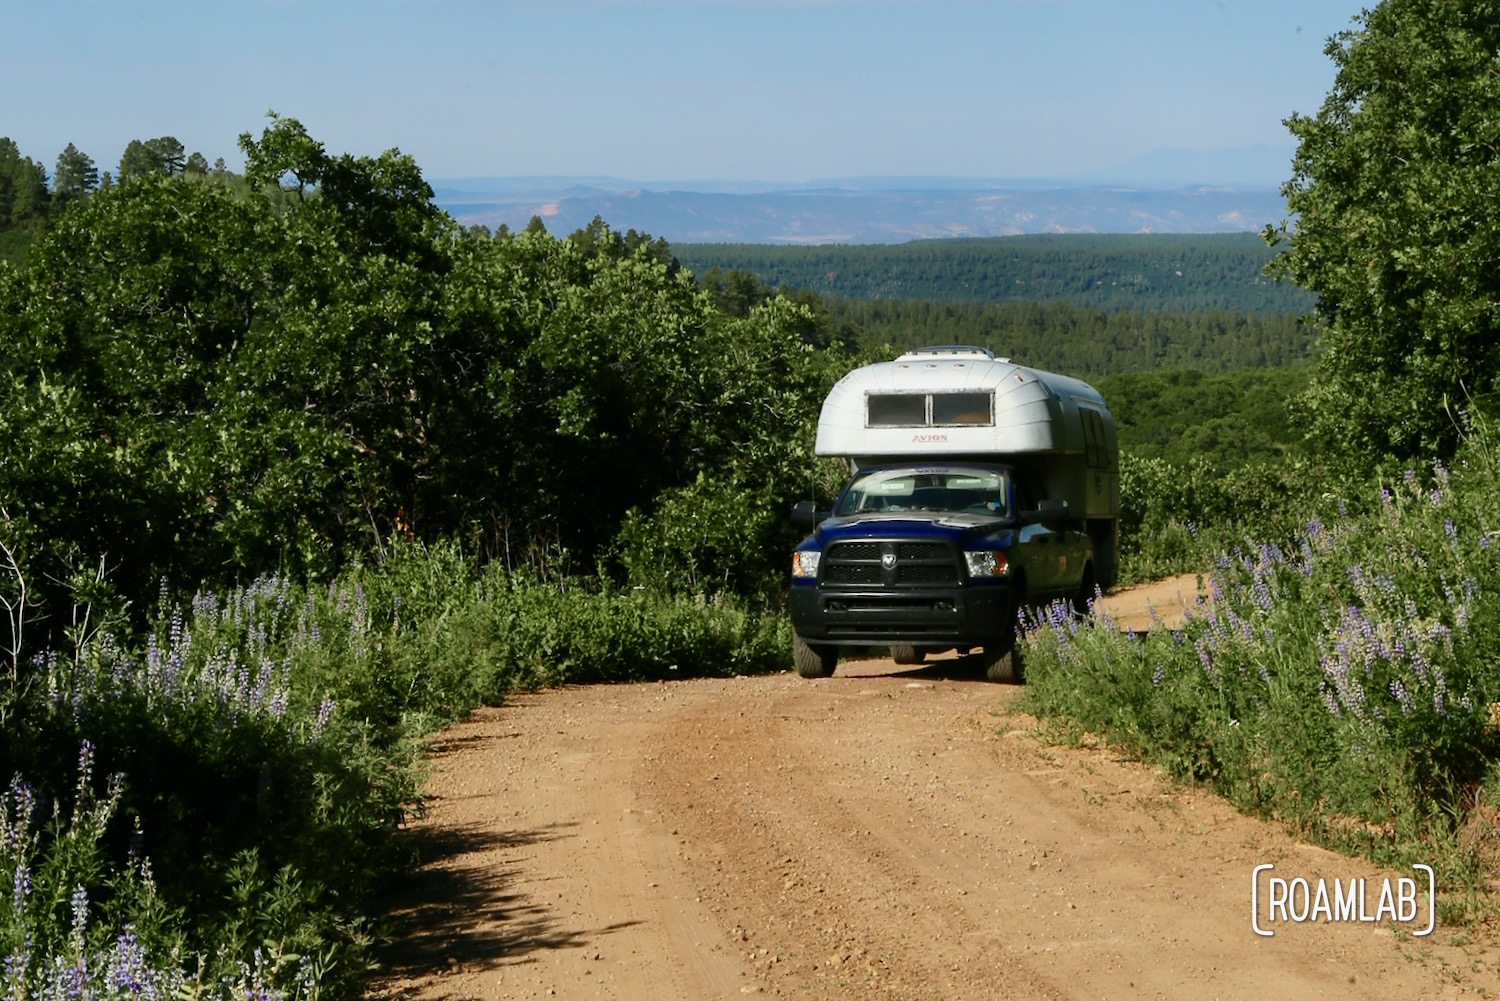 Vintage 1970 Avion C11 truck camper driving down a dirt road on the Rimrocker off-road and OHV trail.